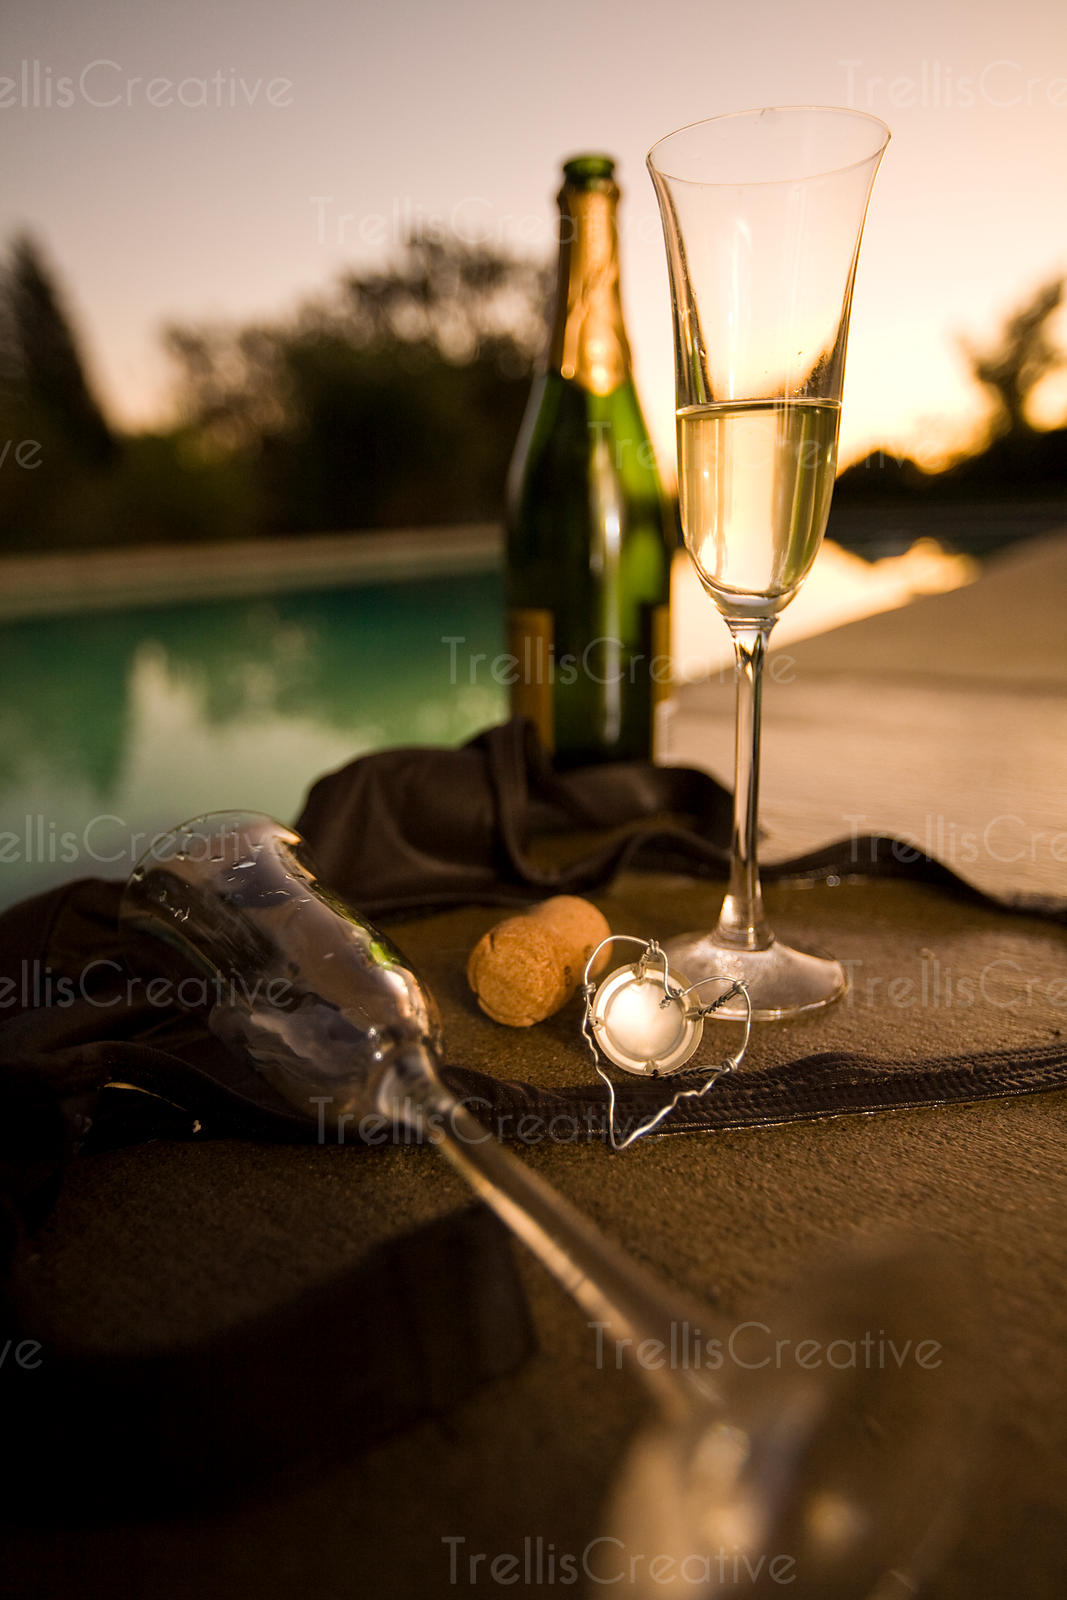 A woman's bikini top, two empty glasses and a bottle of champagne poolside